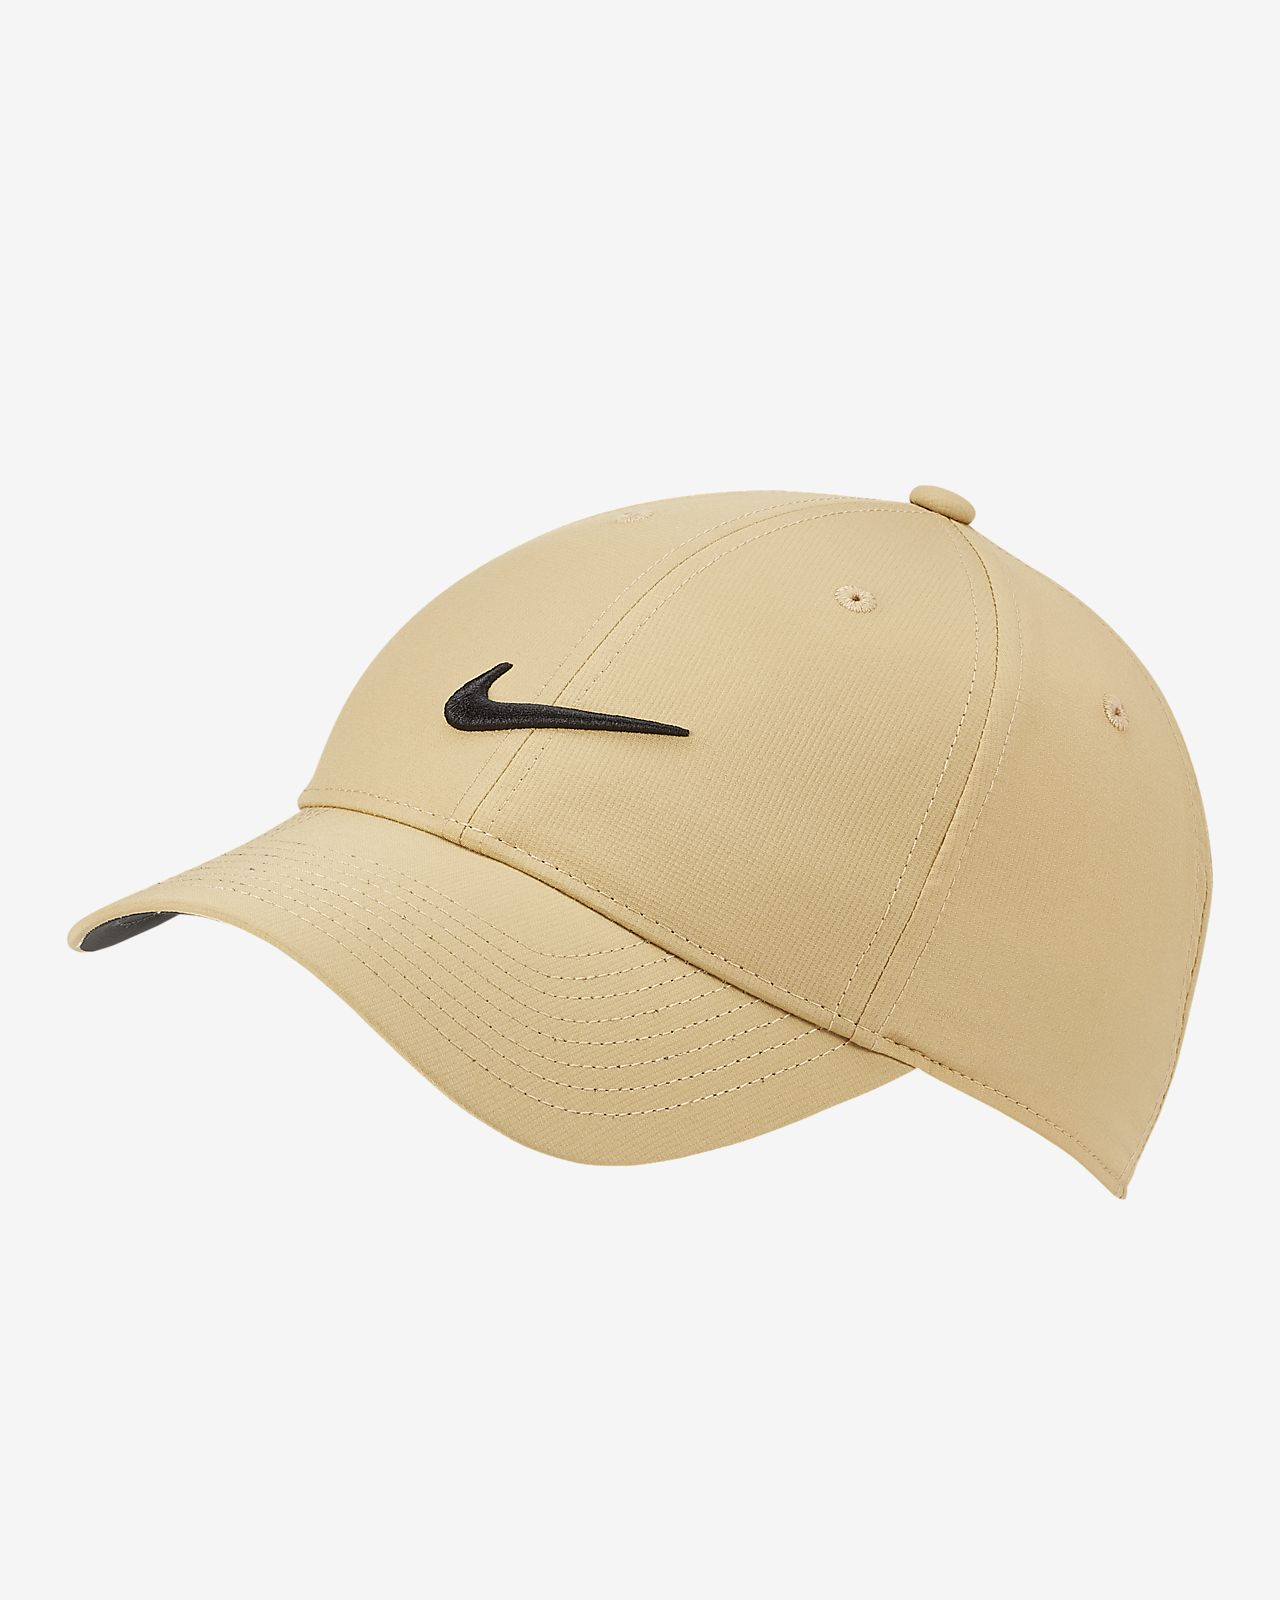 6696afc433659 Nike Legacy 91 Adjustable Golf Hat. Nike.com